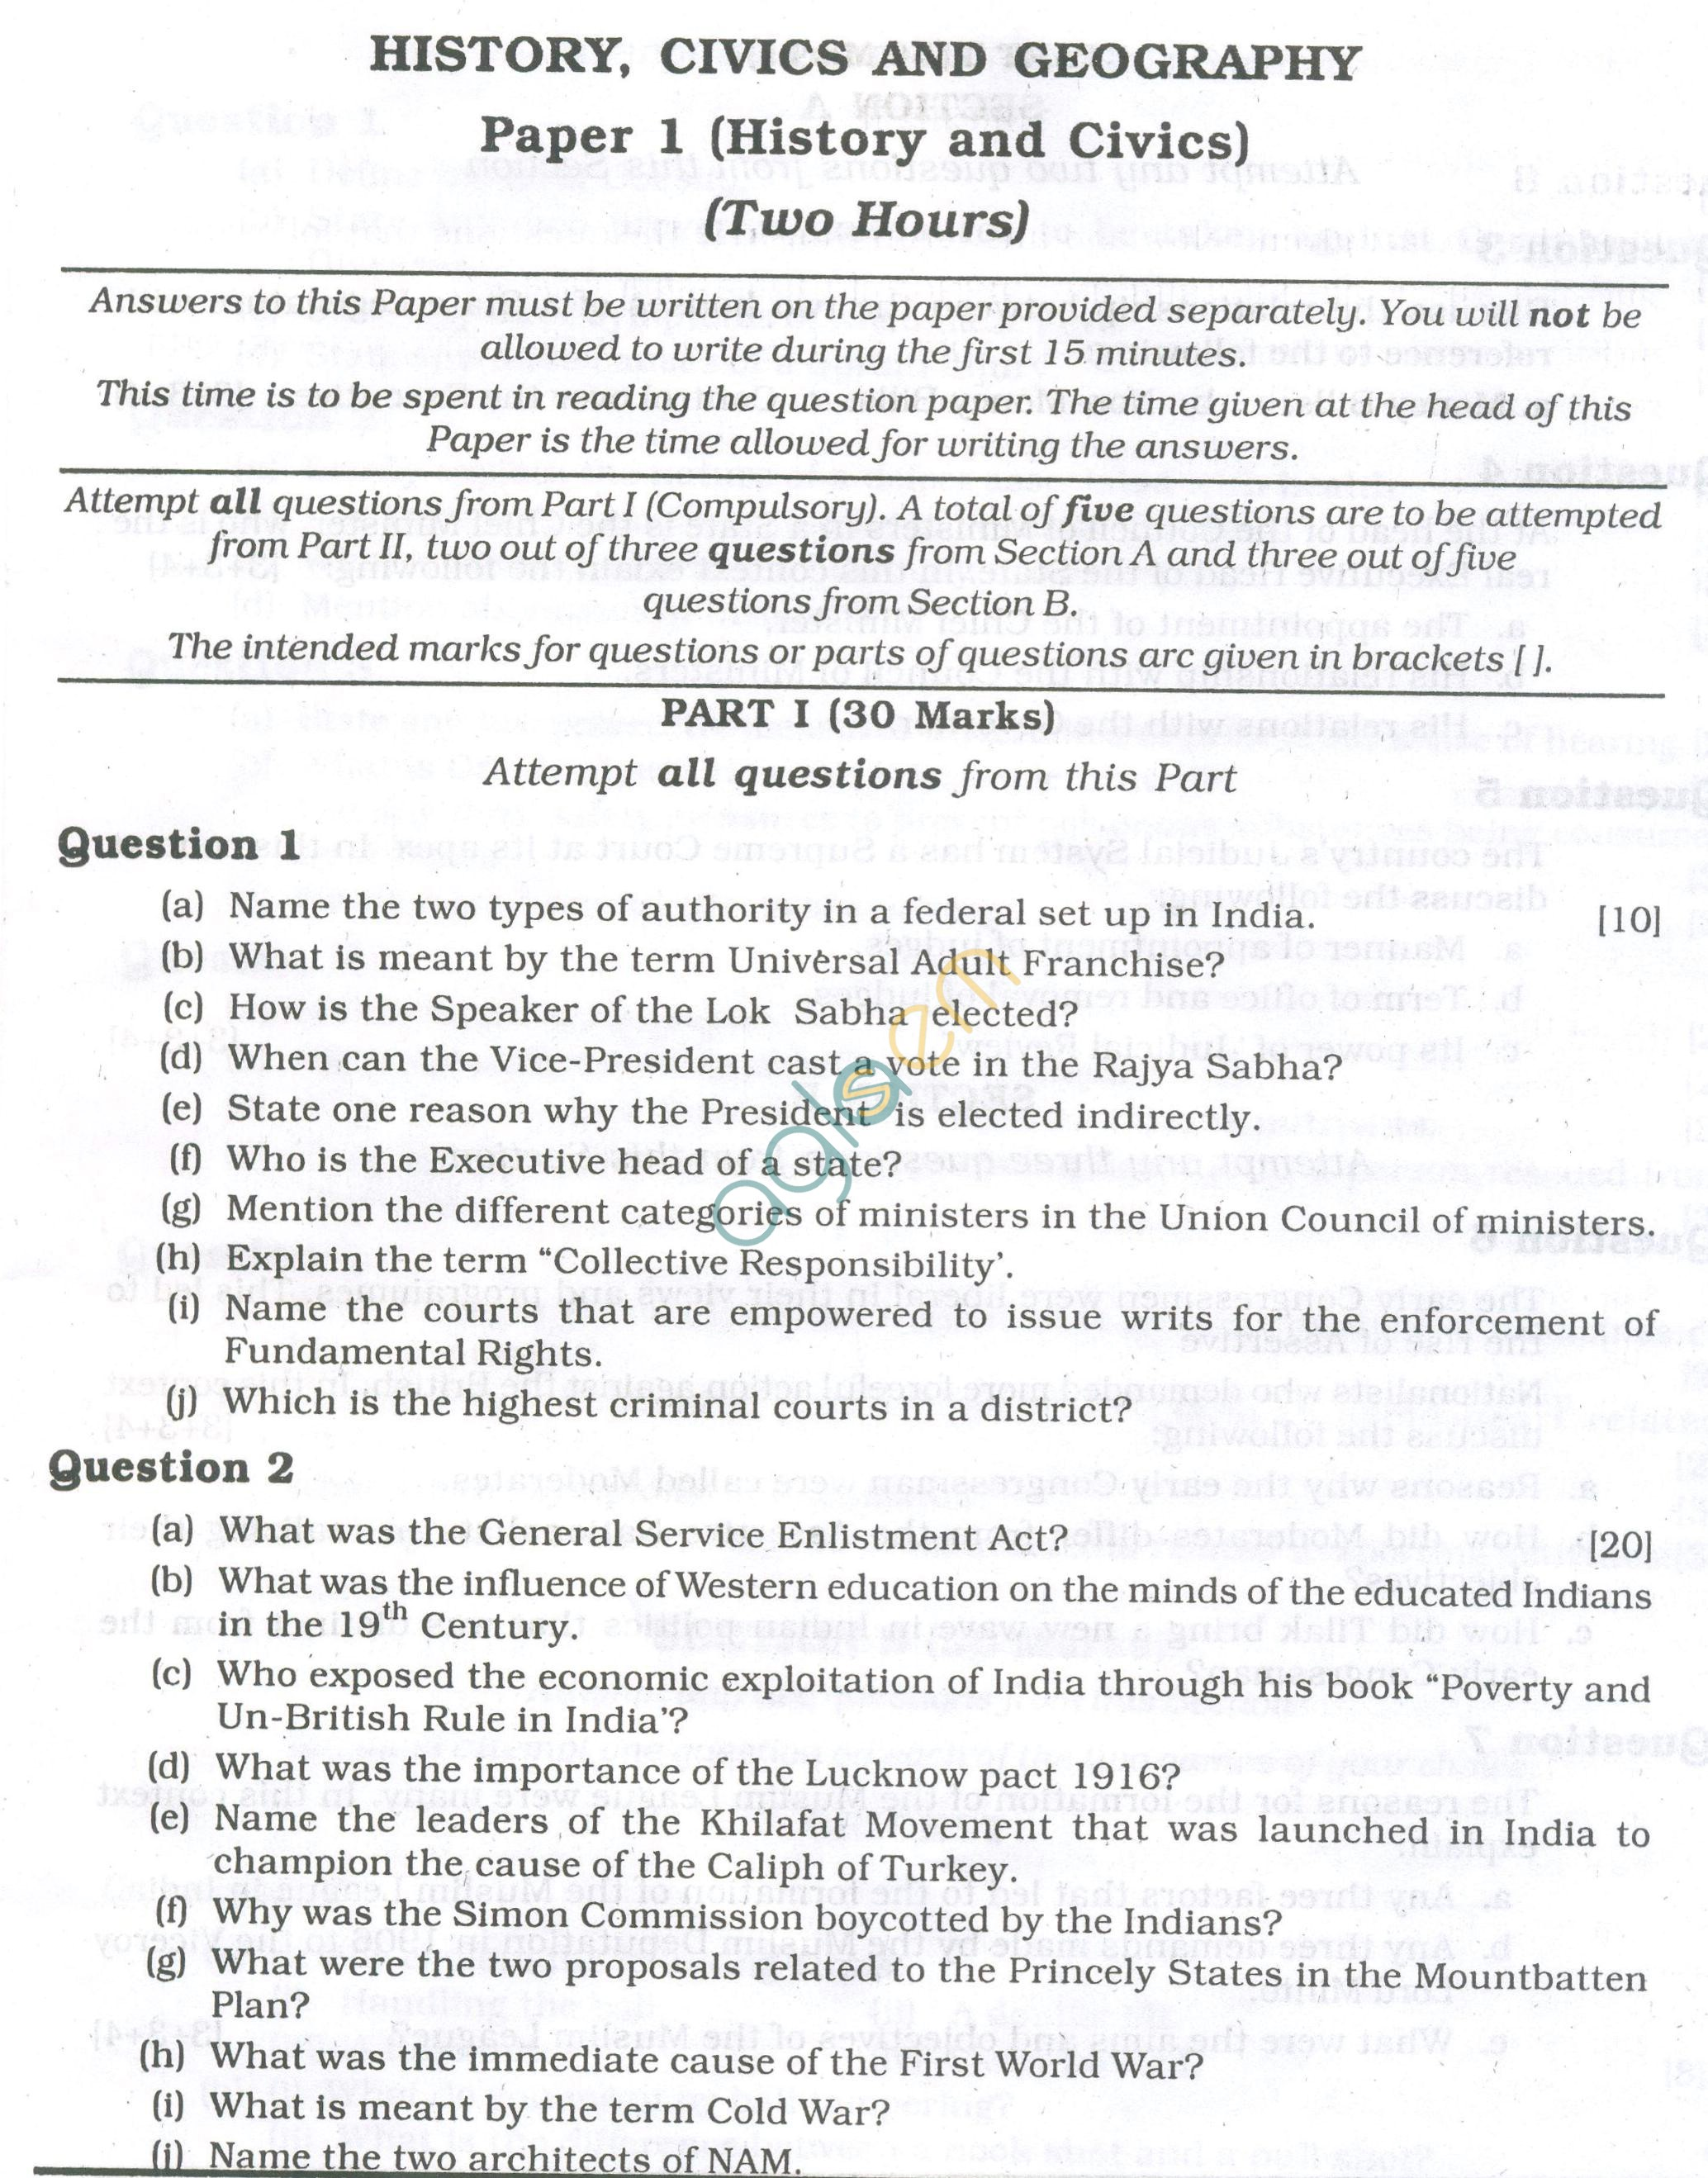 ICSE Question Papers 2013 for Class 10 - History & Civics